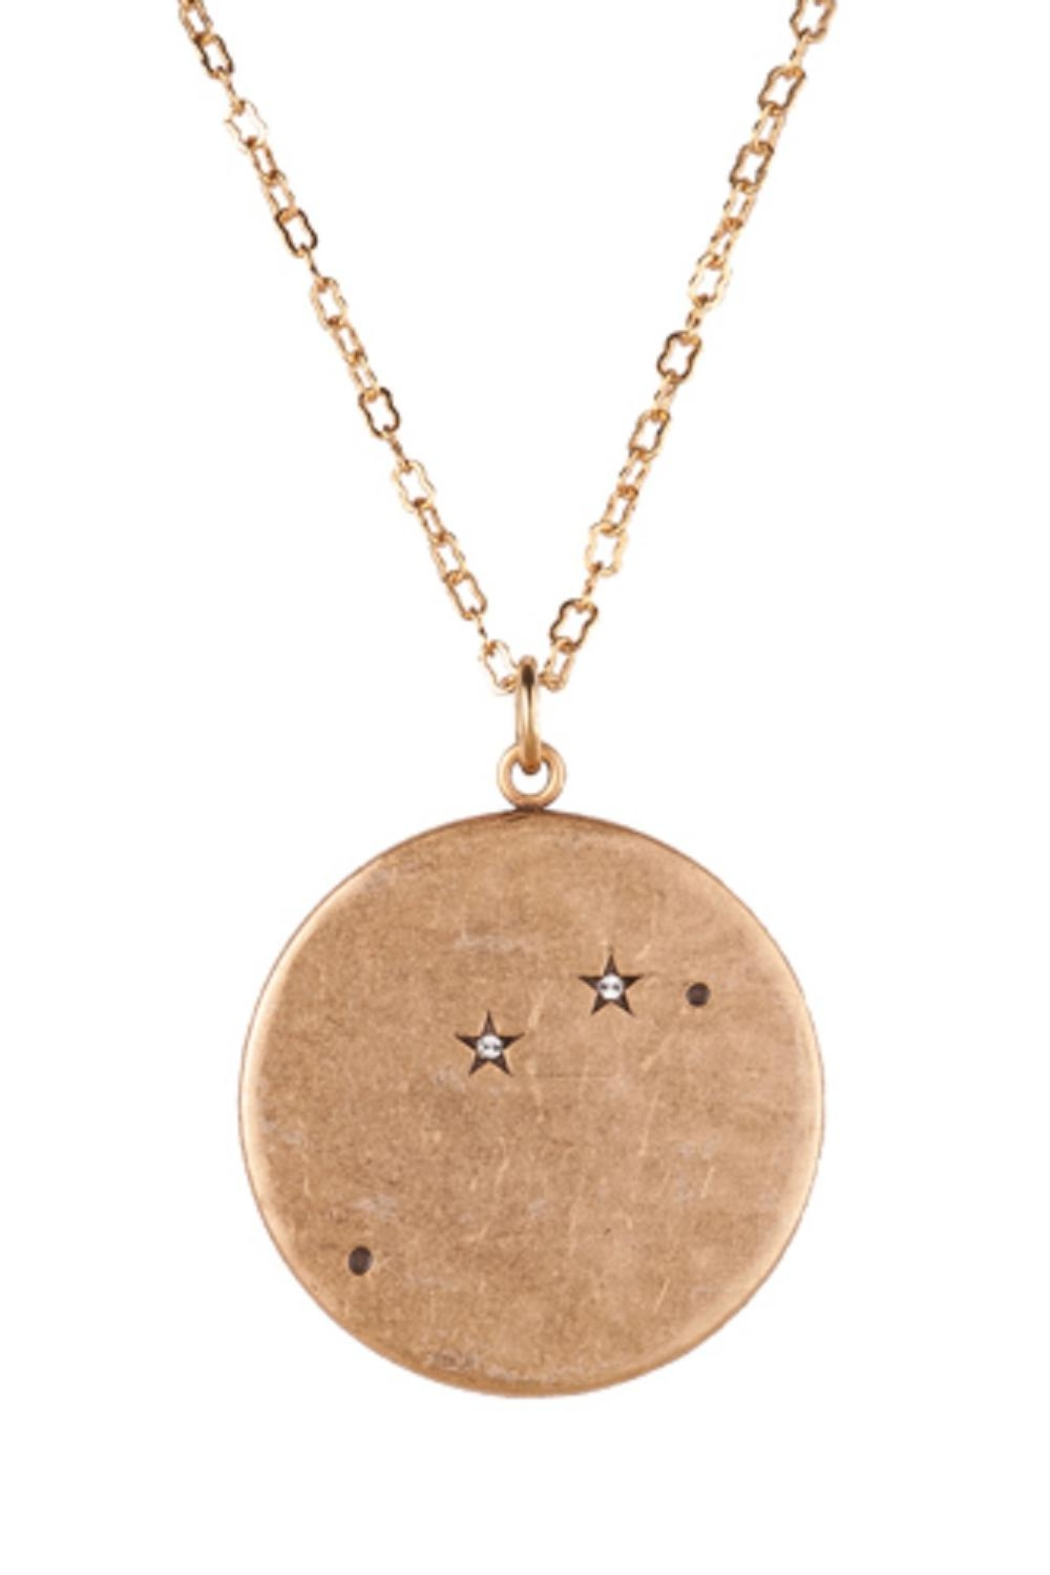 Beaucoup Designs Aries Constellation Necklace - Main Image